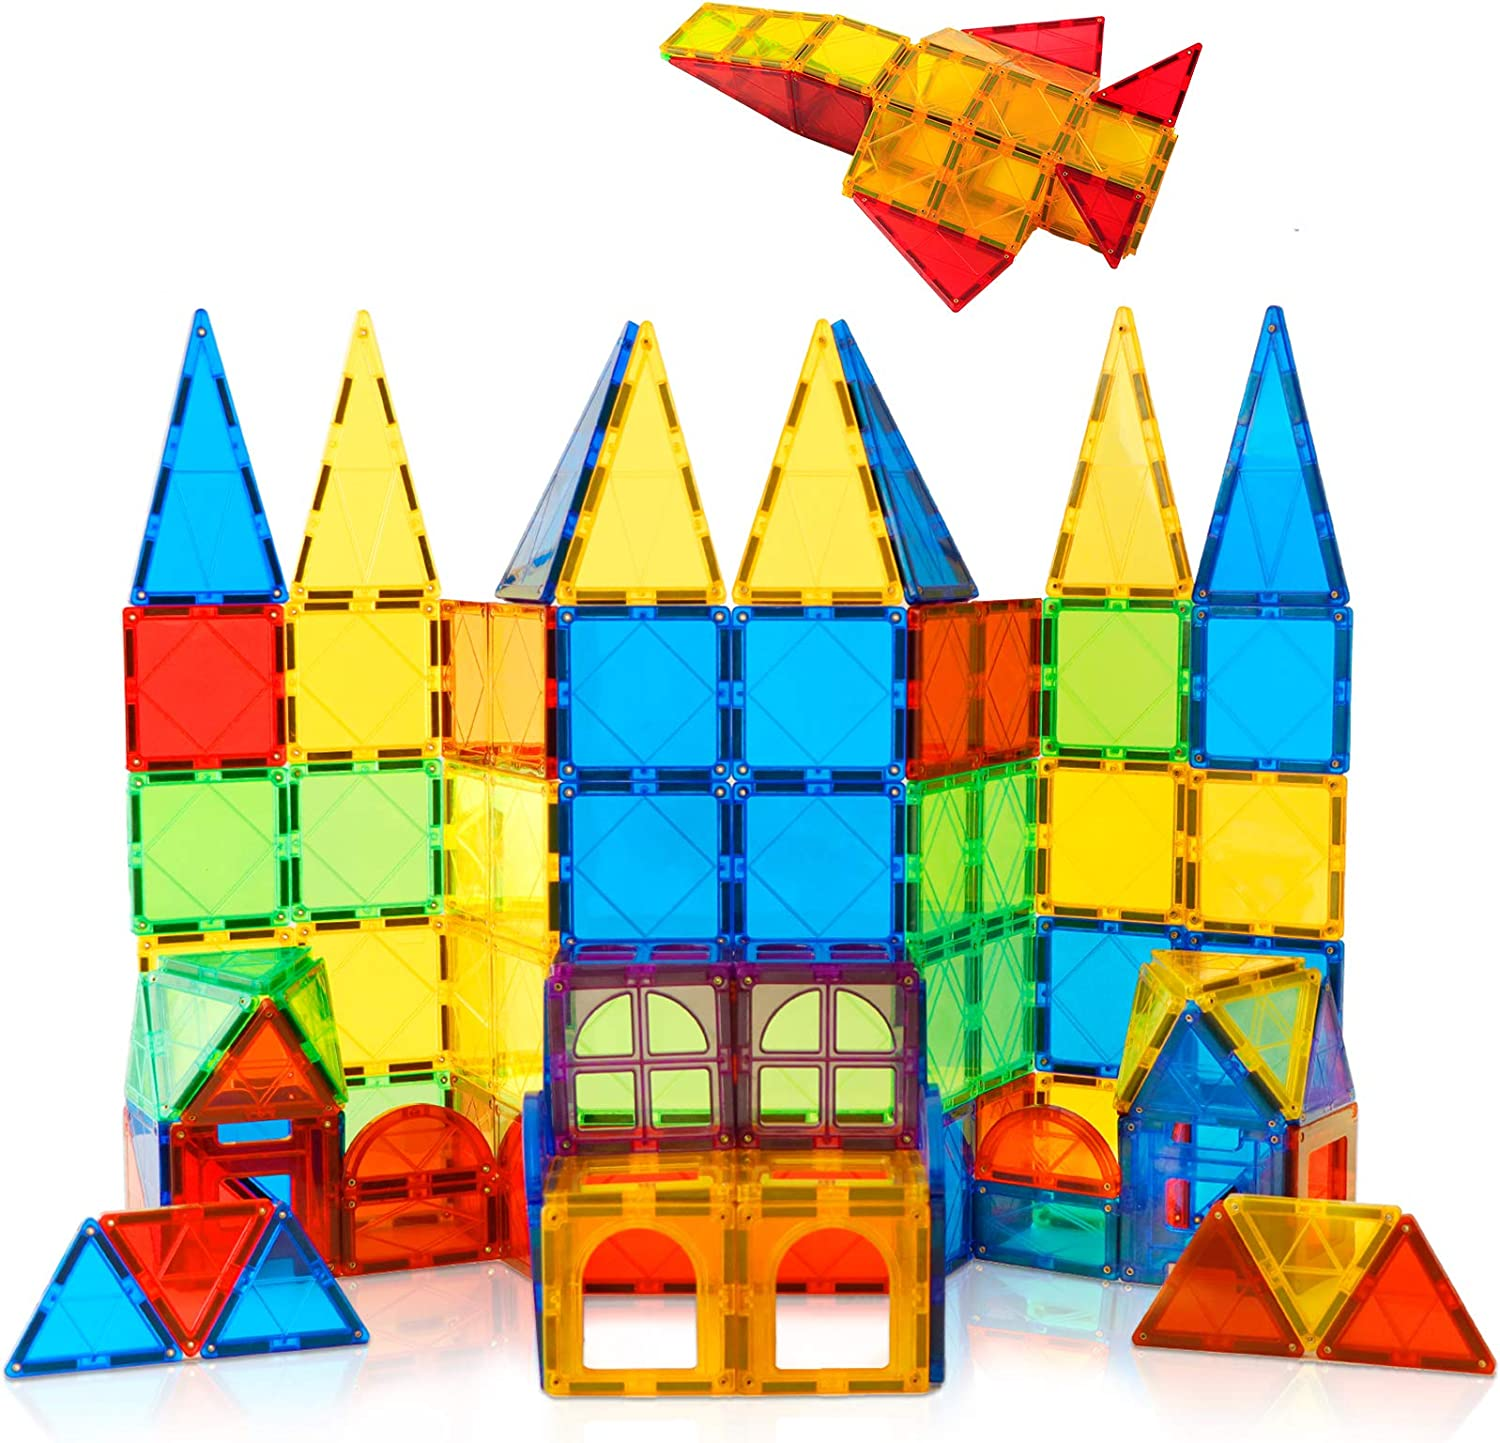 Magnet Toys NEW before selling ☆ Kids Magnetic Building 100 Max 41% OFF Pcs Blo Tiles 3D